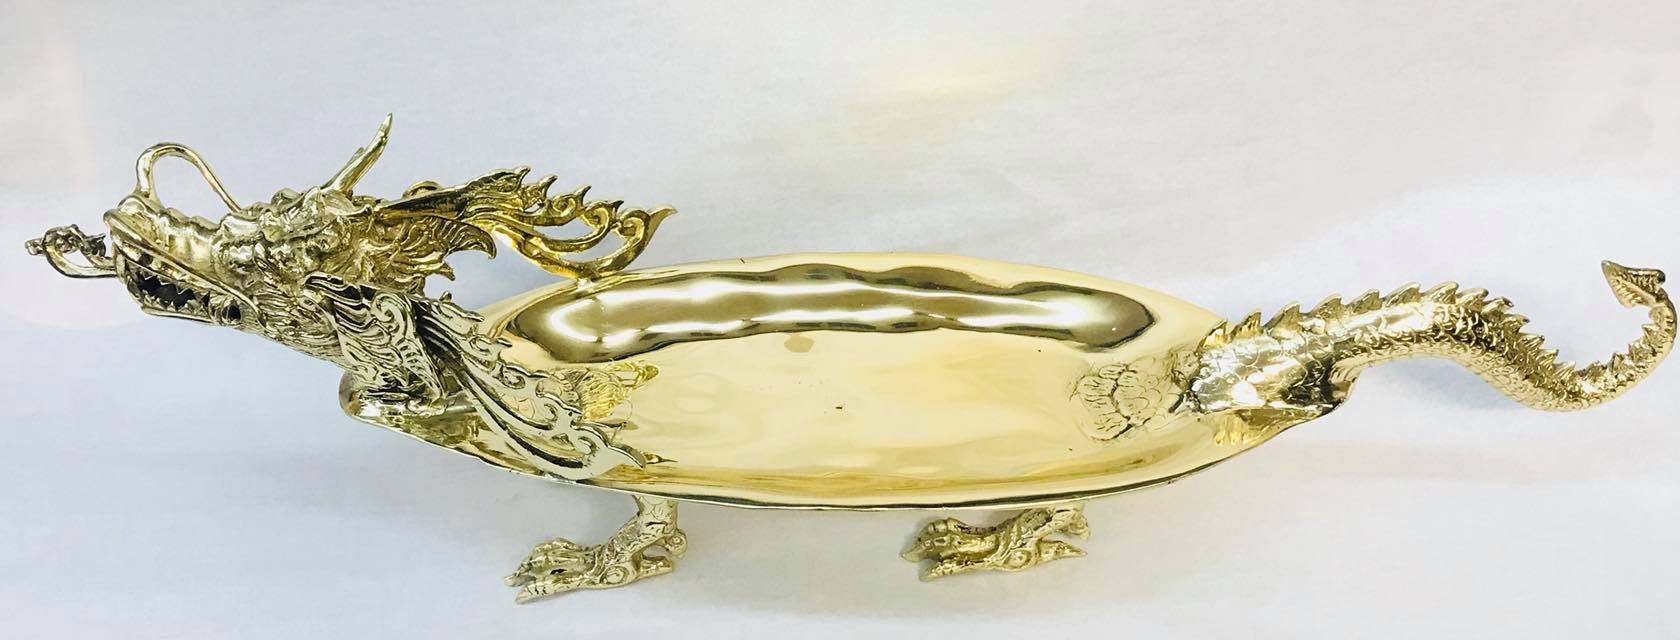 Antique Indonesian dragon tray